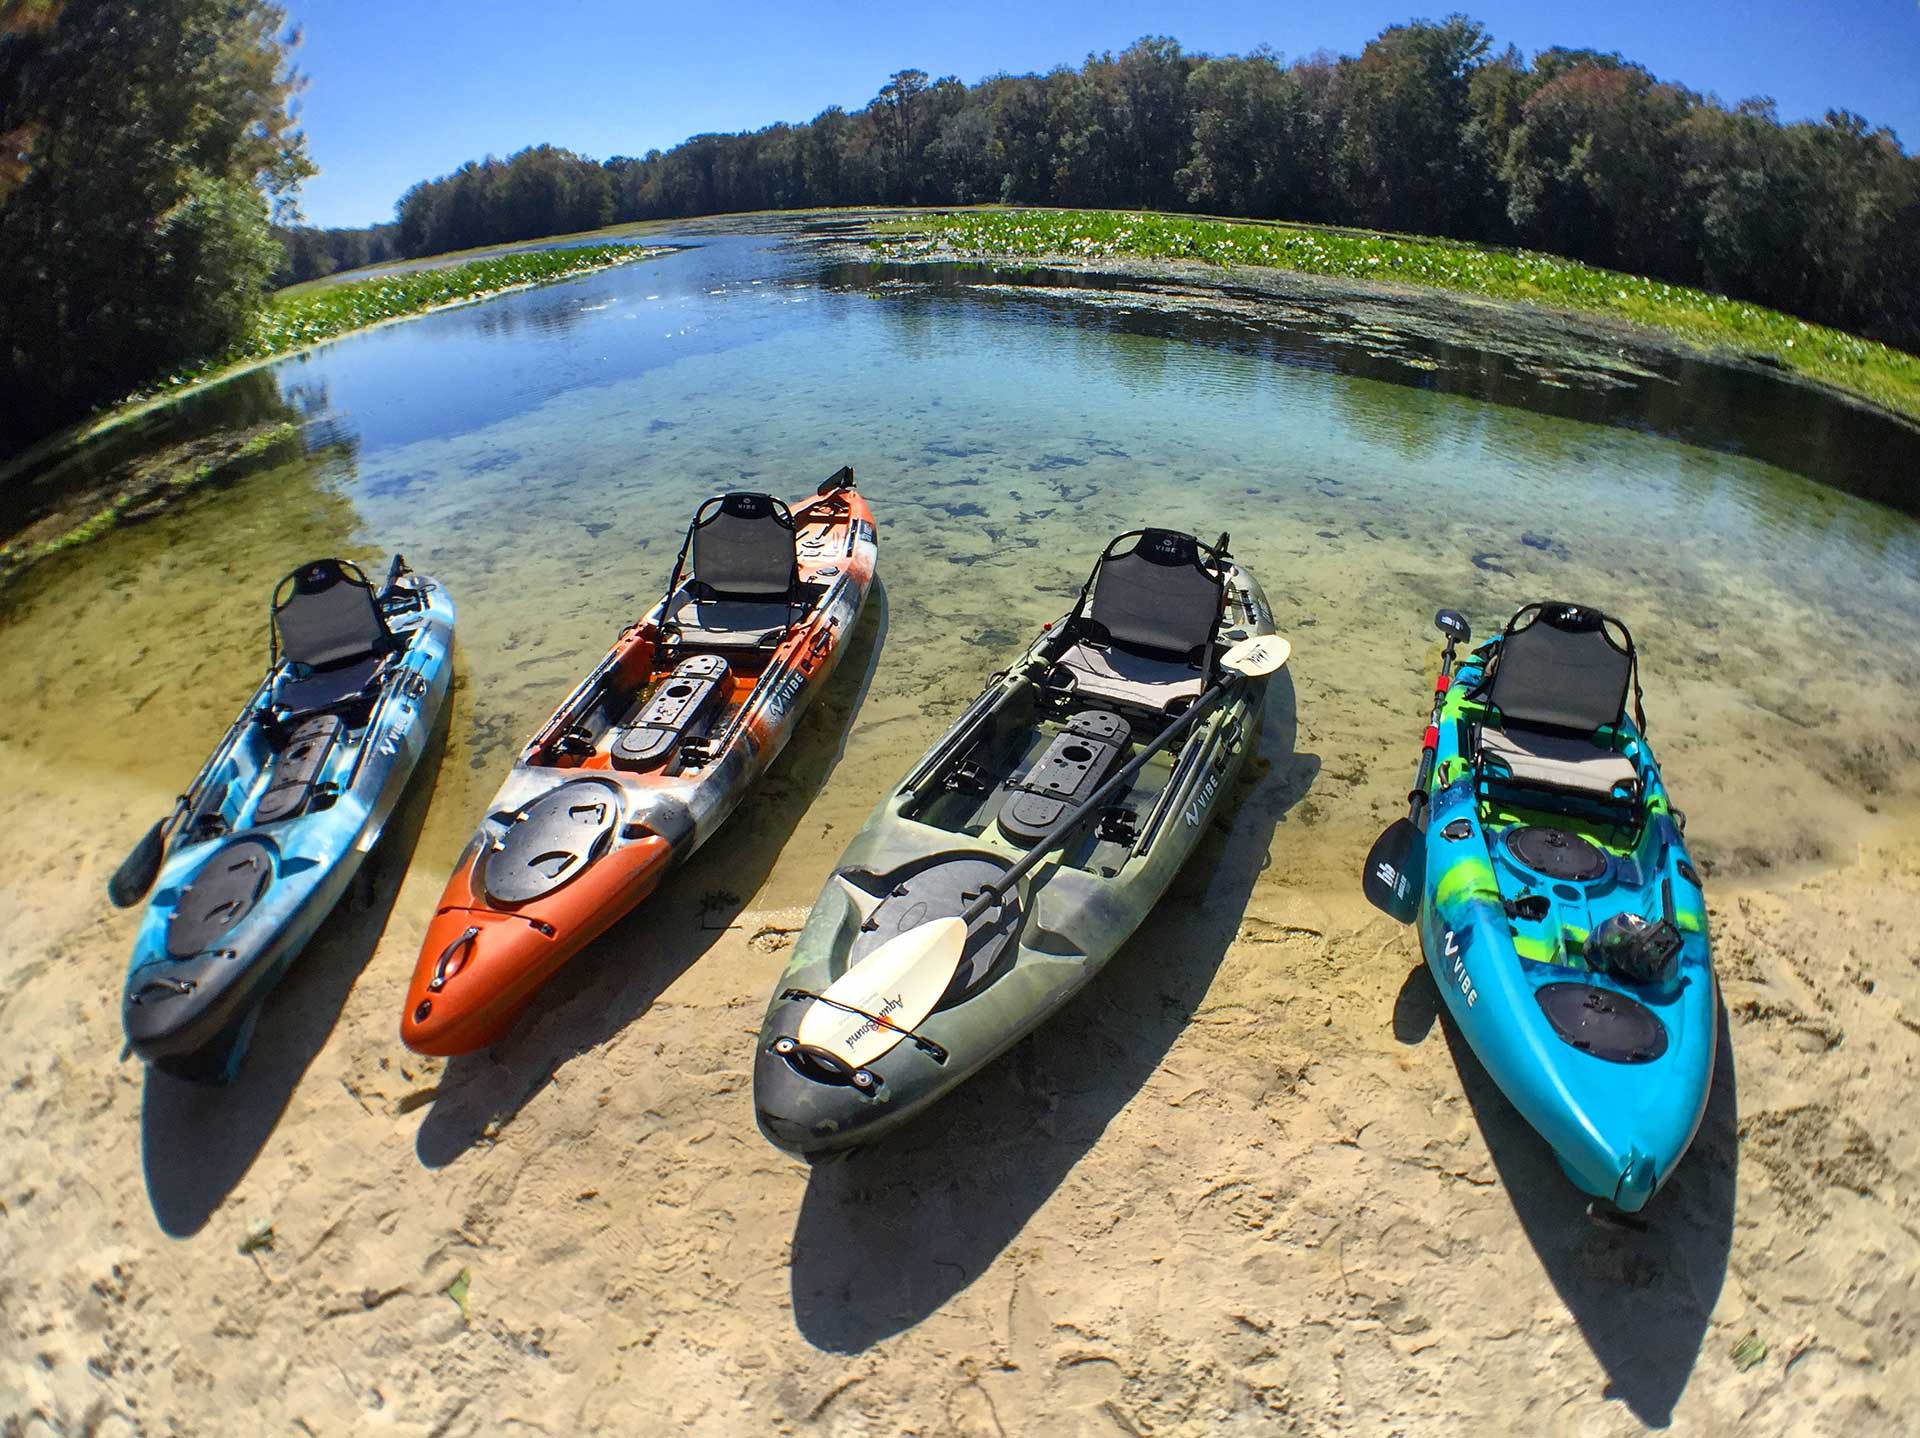 Group of kayaks lined up on a sandy shoreline.